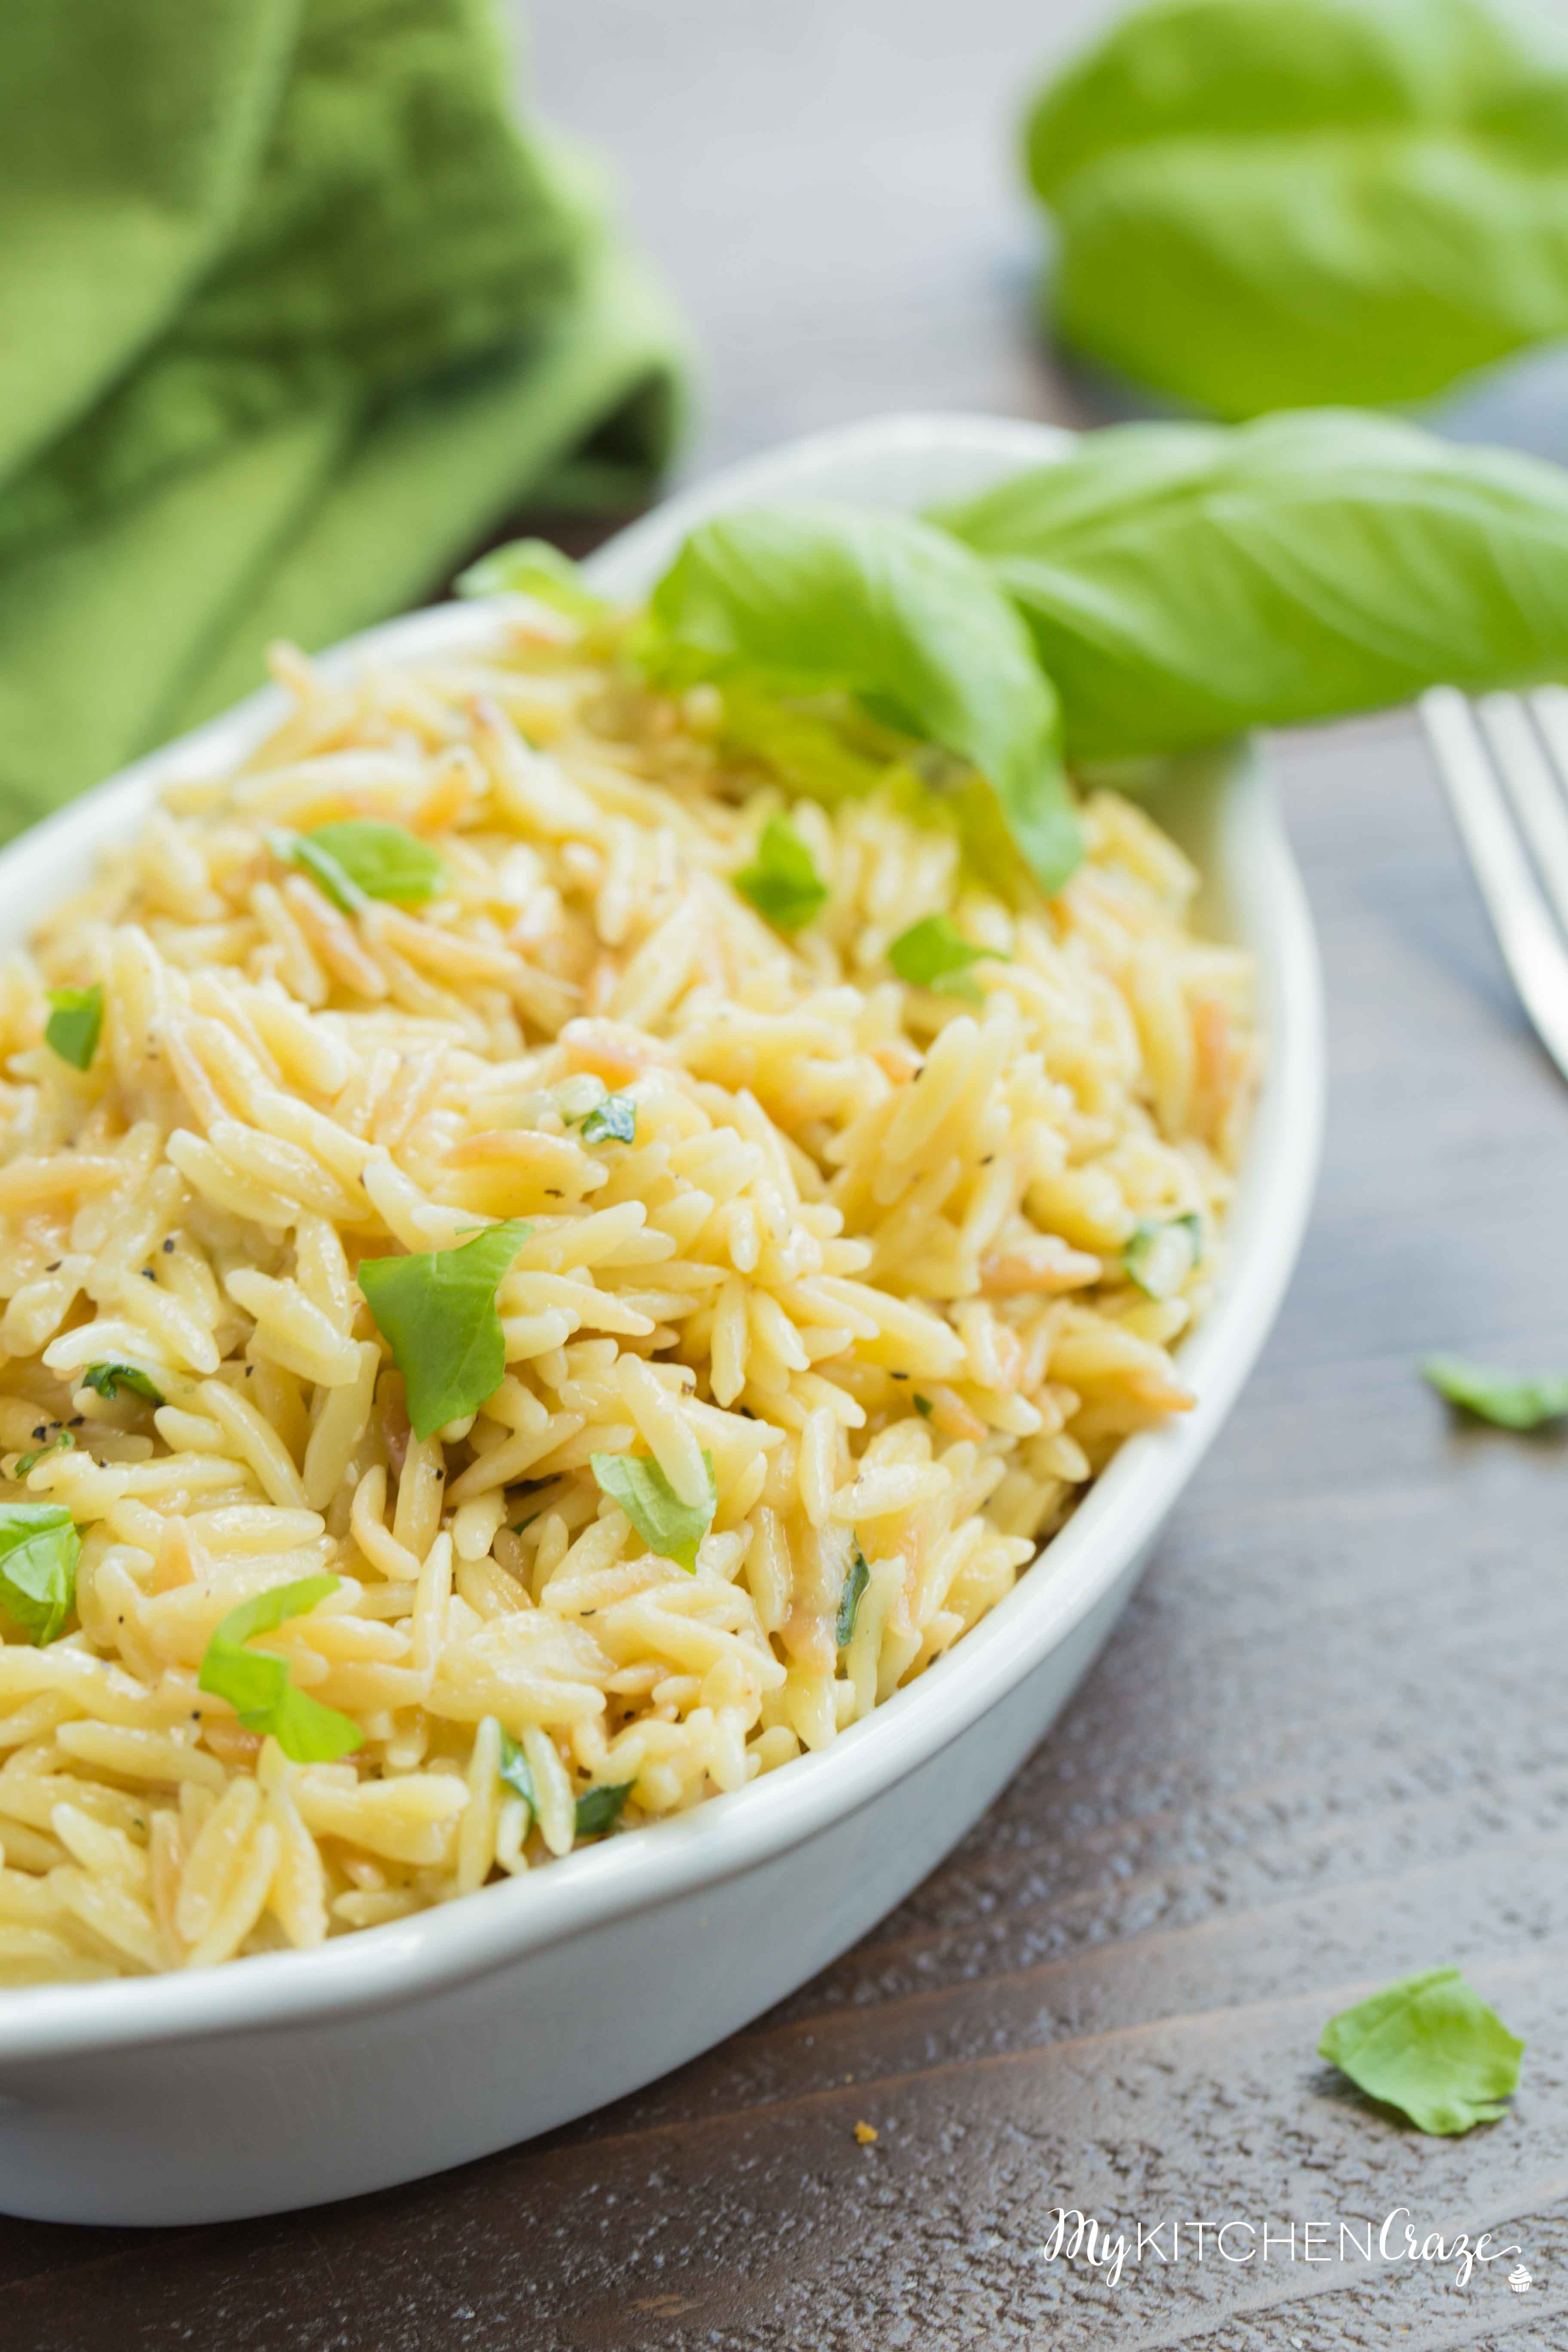 Cheesy Basil Orzo ~ Only 6 ingredients are all you need to make this fresh pasta side recipe. The cheese and basil brighten the dish making it perfect for any main.